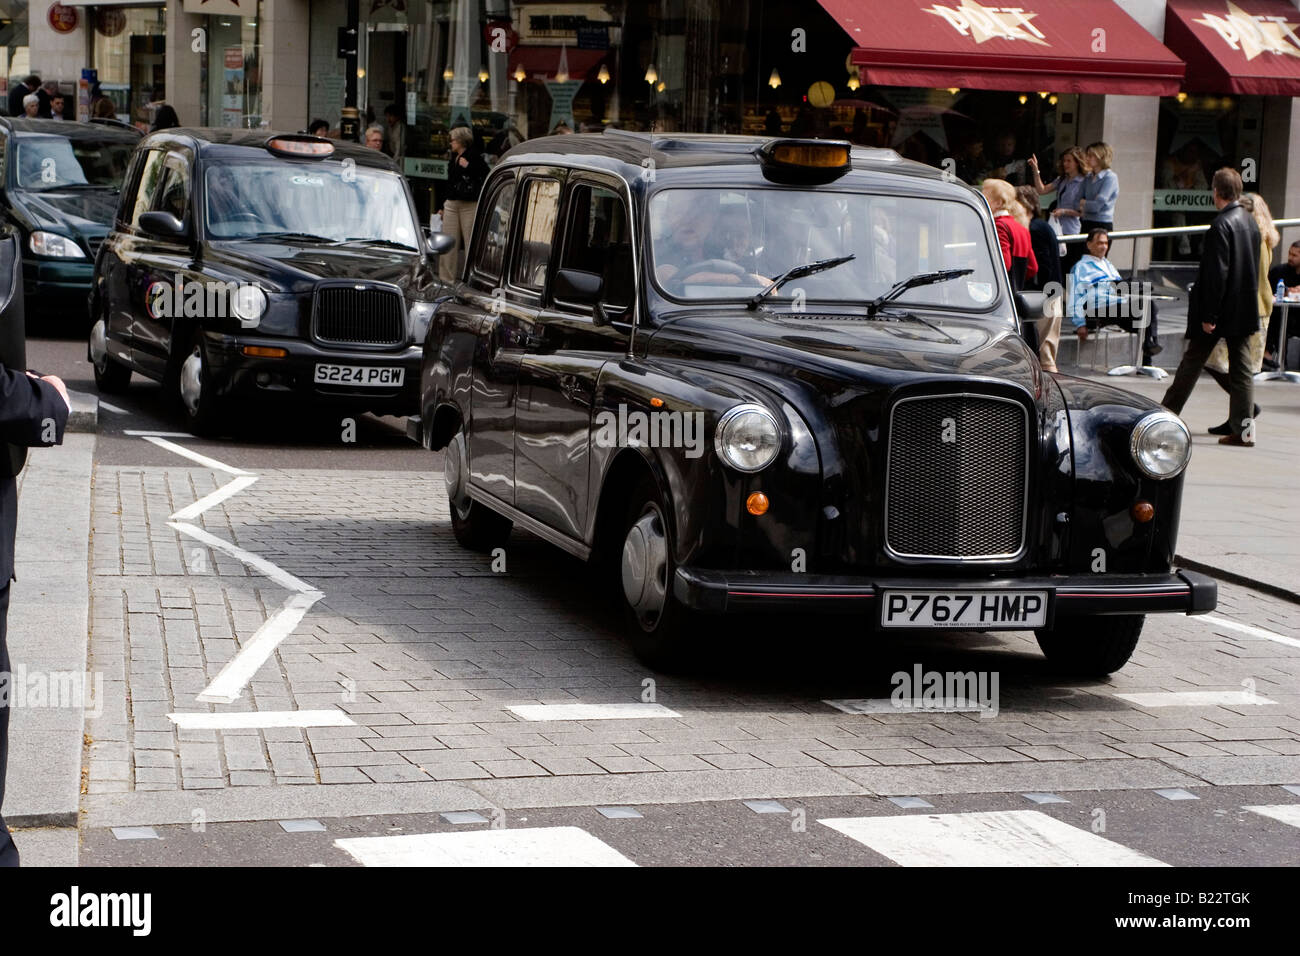 Taxis queue at a zebra crossing in central London. The black cab or hackney carriage is a well known site in London. - Stock Image